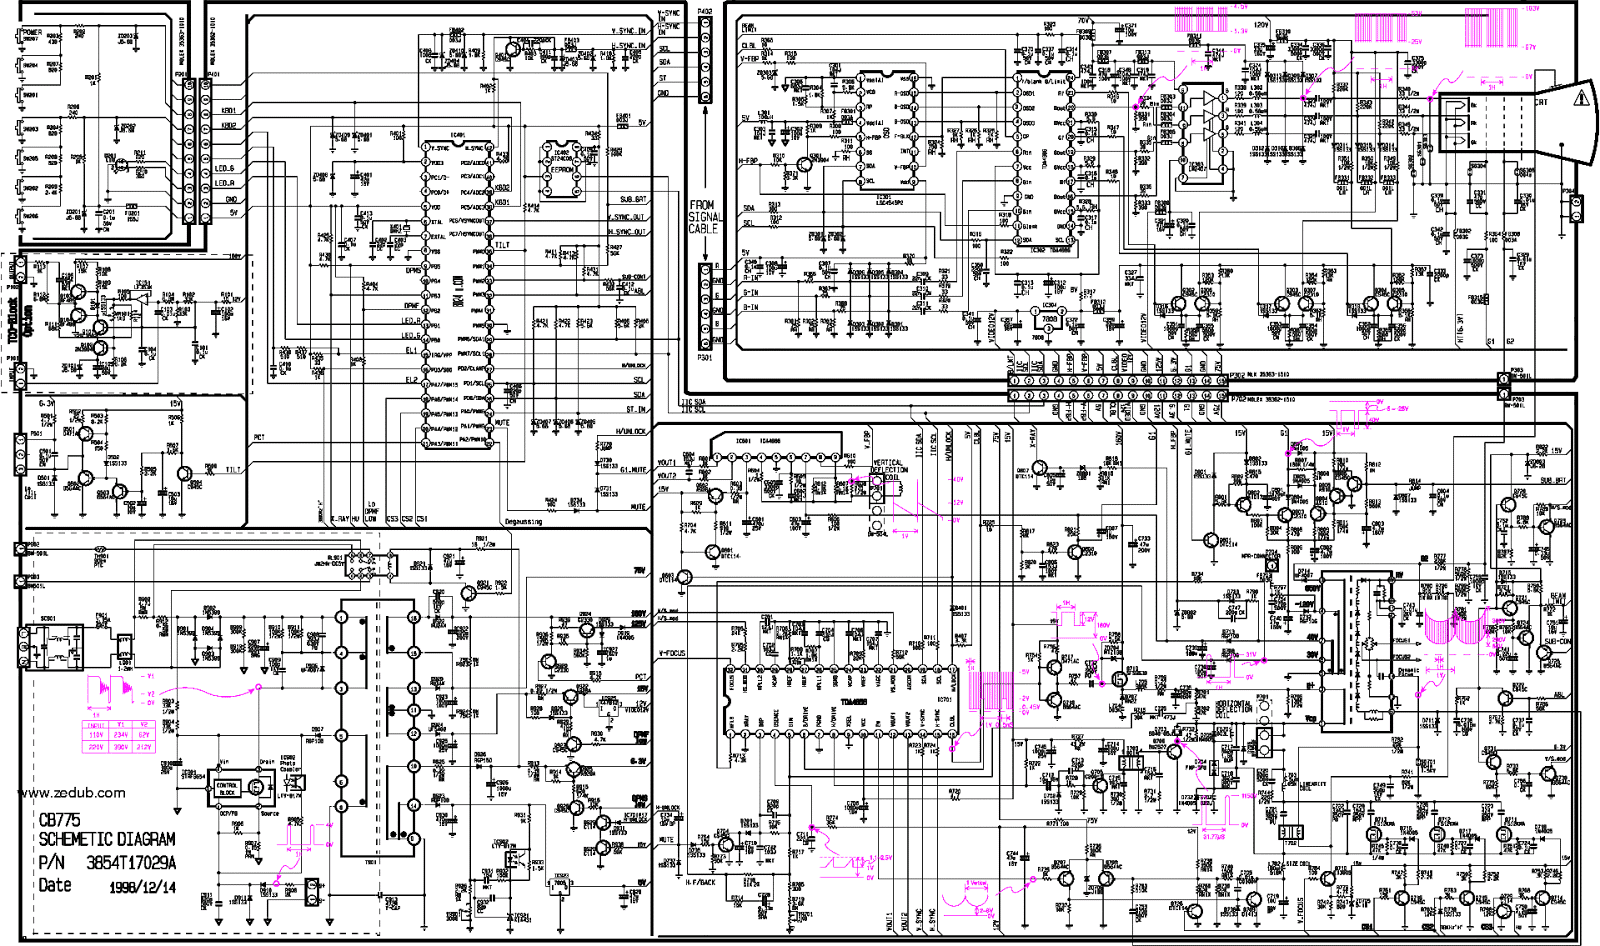 Lg Tv Schematic Diagrams. lg tv circuit diagram learn basic electronics  circuit. lg cf 25h84 color tv power supply circuit diagram under. schematic  diagrams wp32a30 lg 32 inch crt tv circuit. electro2002-acura-tl-radio.info